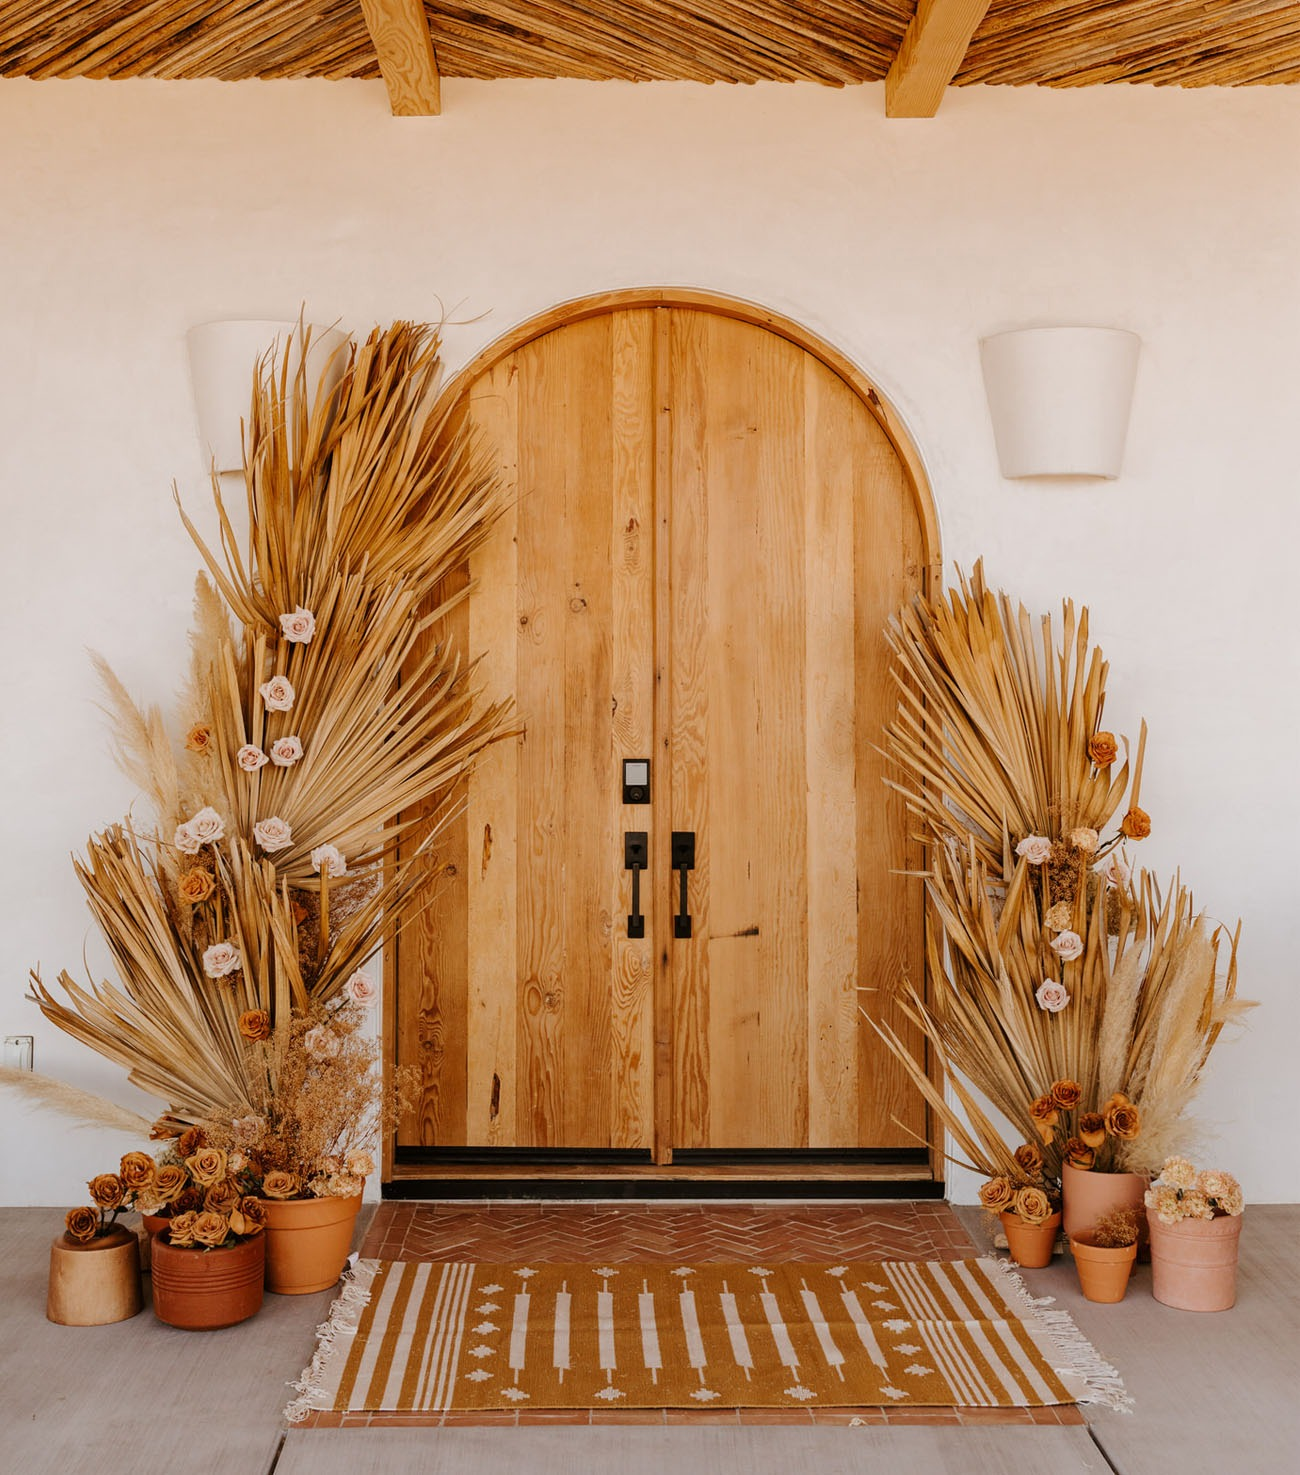 dried grass decorating an arched doorway being used as a DIY wedding backdrop